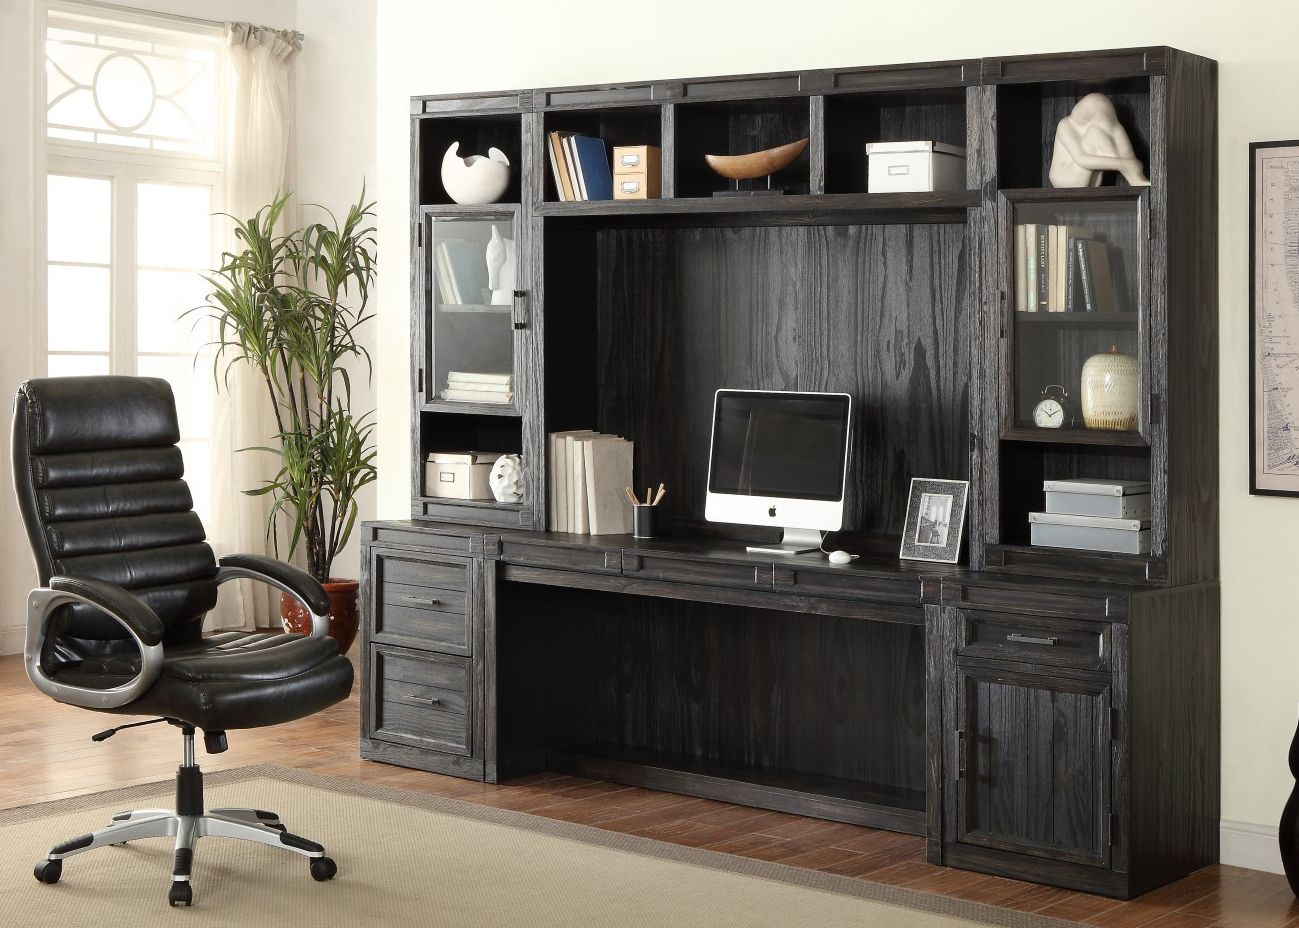 Pin by rahayu12 on xclusive office decoration | Desk wall ... Nantucket Home Office Modular Furniture on real estate office furniture, modular wall office furniture, ikea office furniture, inexpensive modular office furniture, herman miller modular office furniture, split level office furniture, office desk and wall units furniture, executive office furniture, small office furniture, apartment office furniture, elegant office furniture, bush office furniture, professional office furniture, sauder office furniture, modular office furniture installation, house office furniture, mobile office furniture, unique office furniture, ranch office furniture, automobile office furniture,